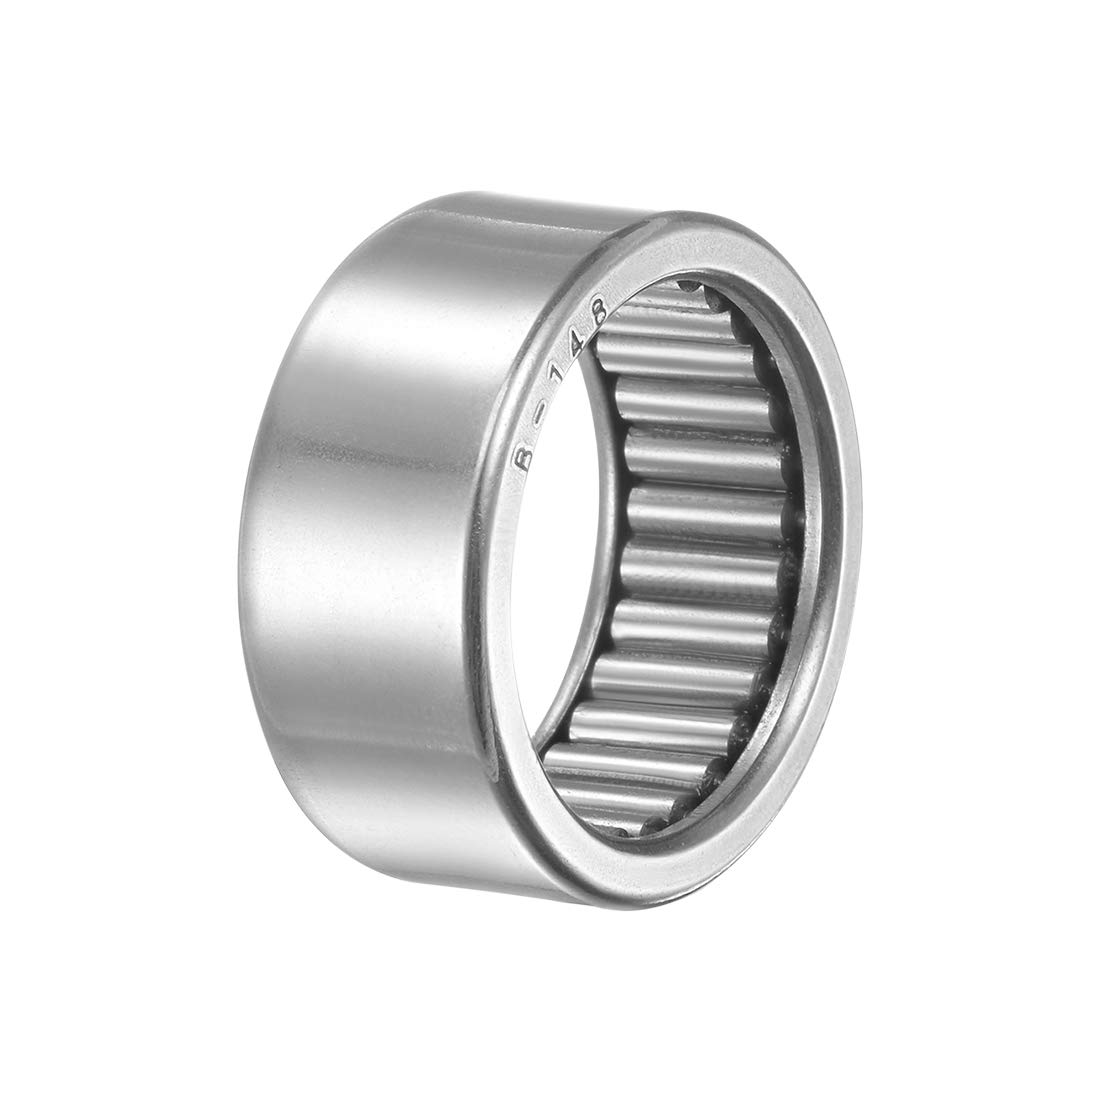 7//8-inch I.D Open 1-1//8-inch OD 1-inch Width 14400N Static Load 7040N Dynamic Load 4800Rpm Limiting Speed uxcell B1416 Needle Roller Bearings Full Complement Drawn Cup